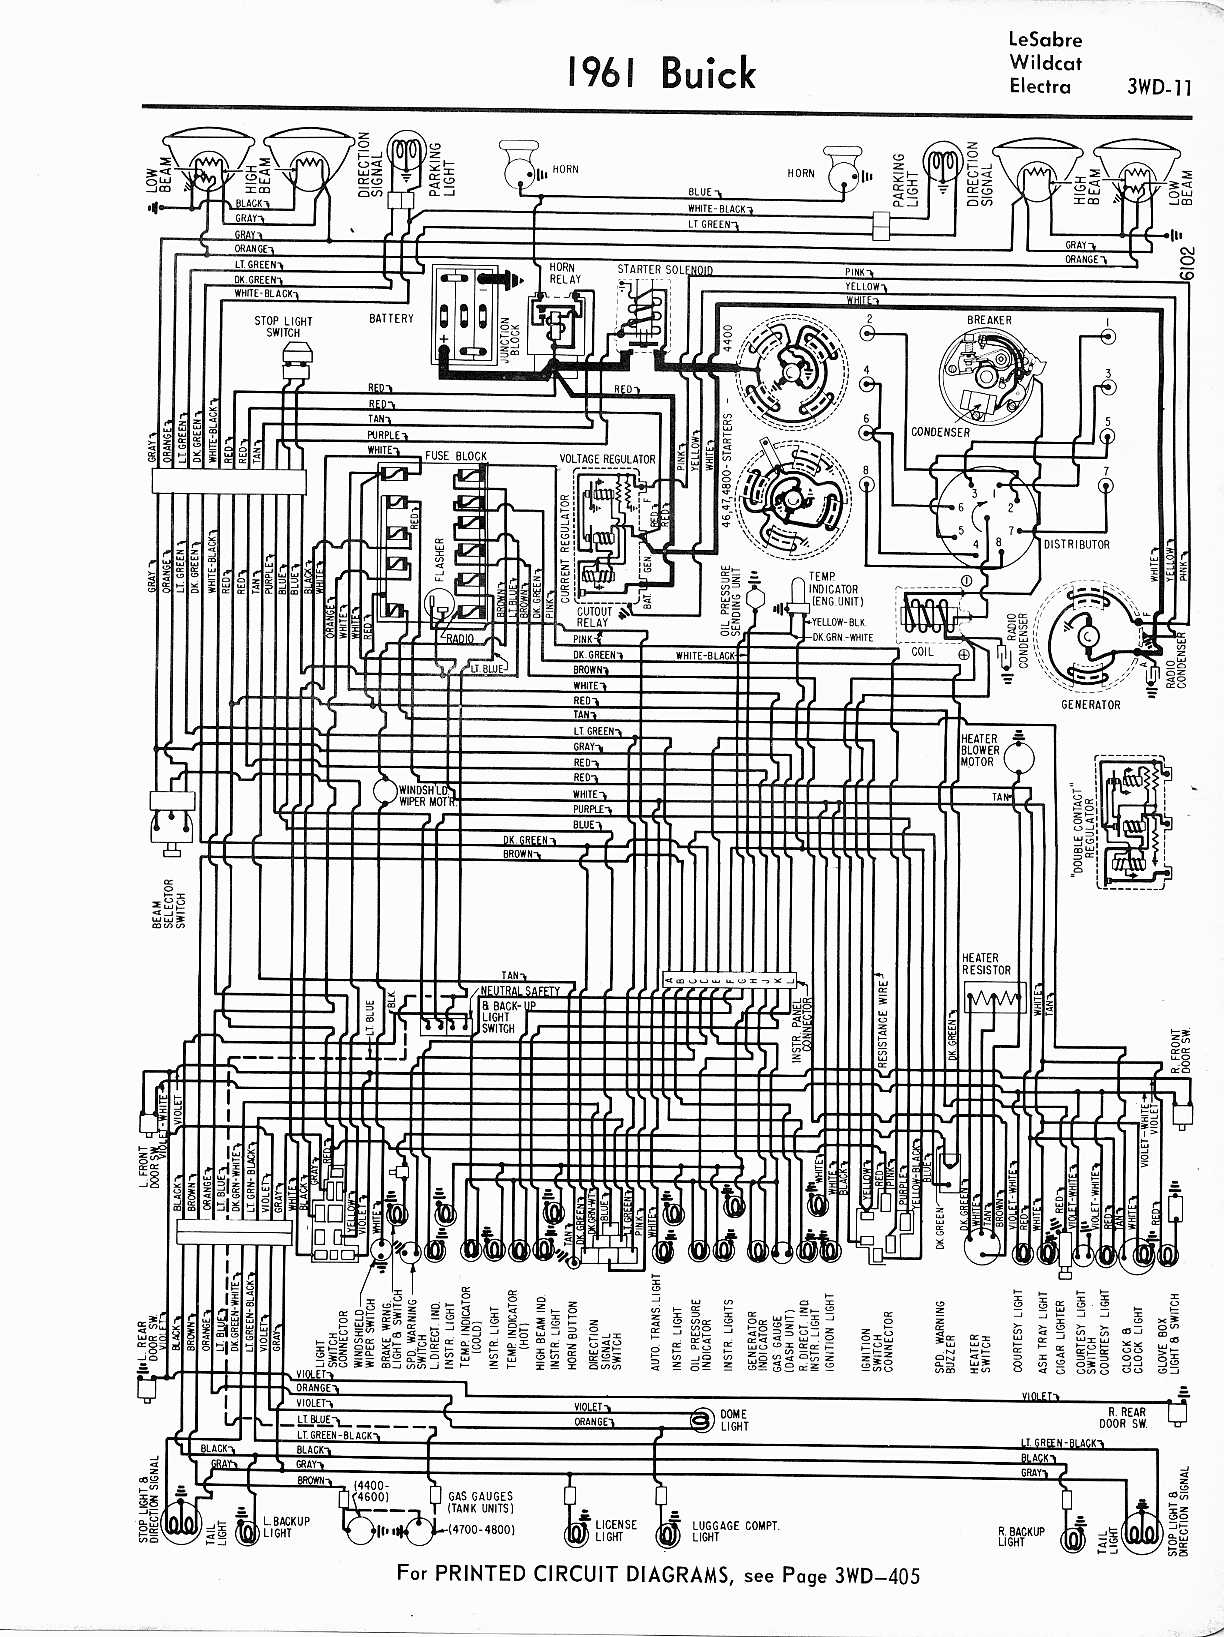 1960 Buick Lesabre Wiring Diagram The Portal And Forum Of Diagrams Additionally For Bulldog Remote Start 1957 1965 Rh Oldcarmanualproject Com 1994 1998